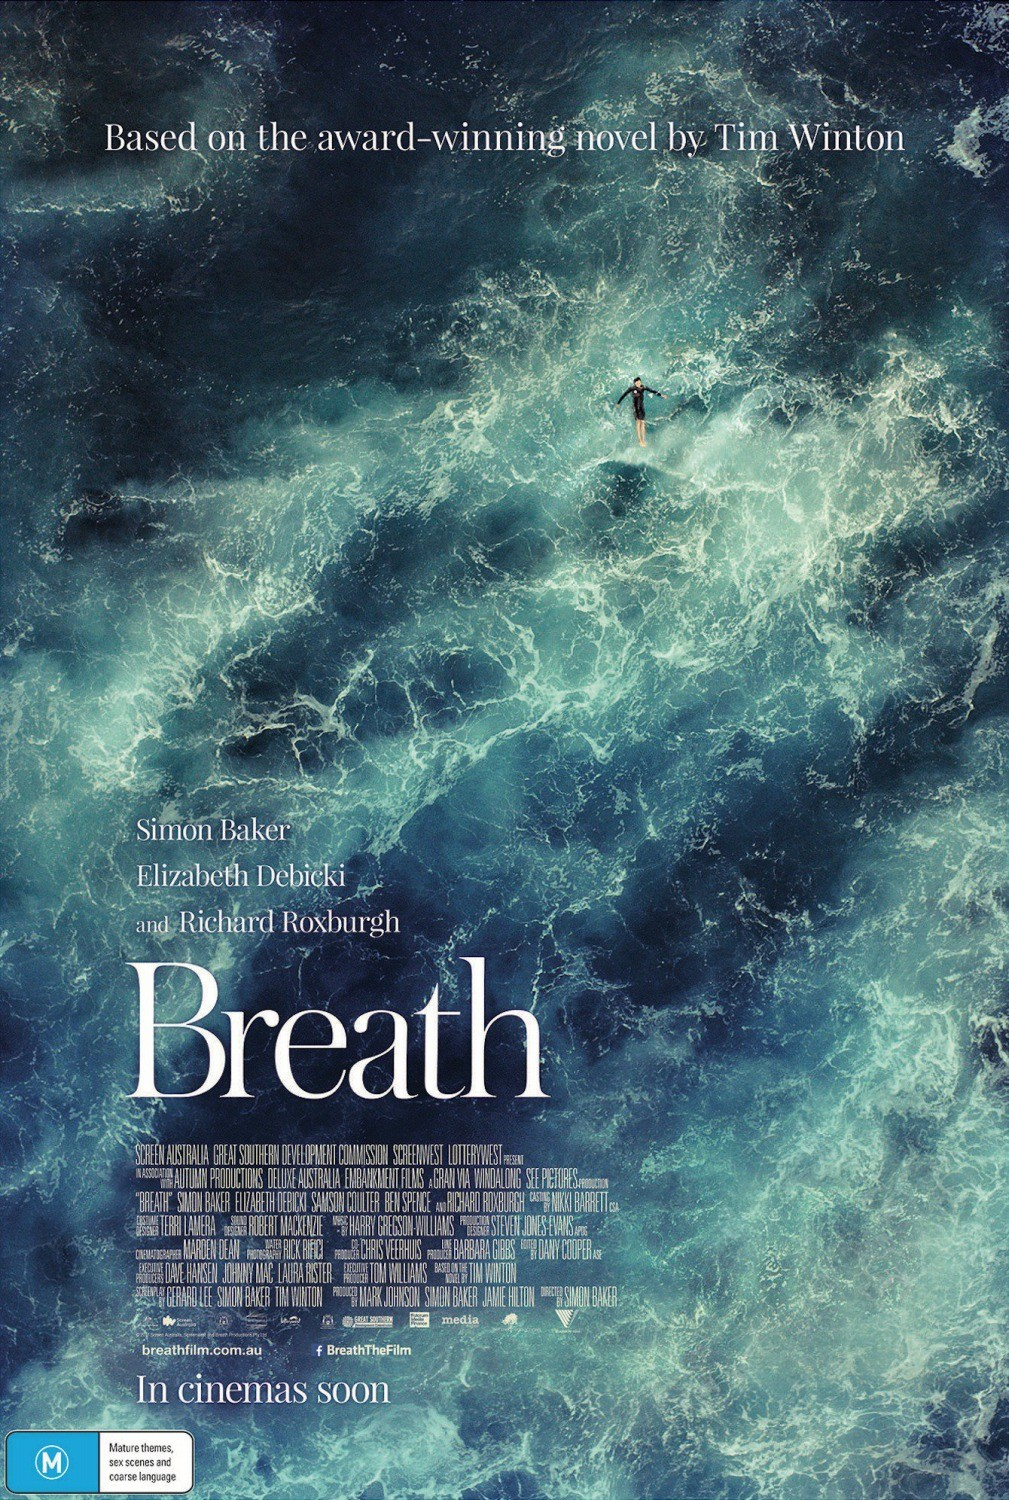 Breath - Directed by Simon BakerWritten by Gerard Lee and Simon Baker, based on a novel by Tim WintonWith Simon Baker, Ben Spence, Samson Coulter…